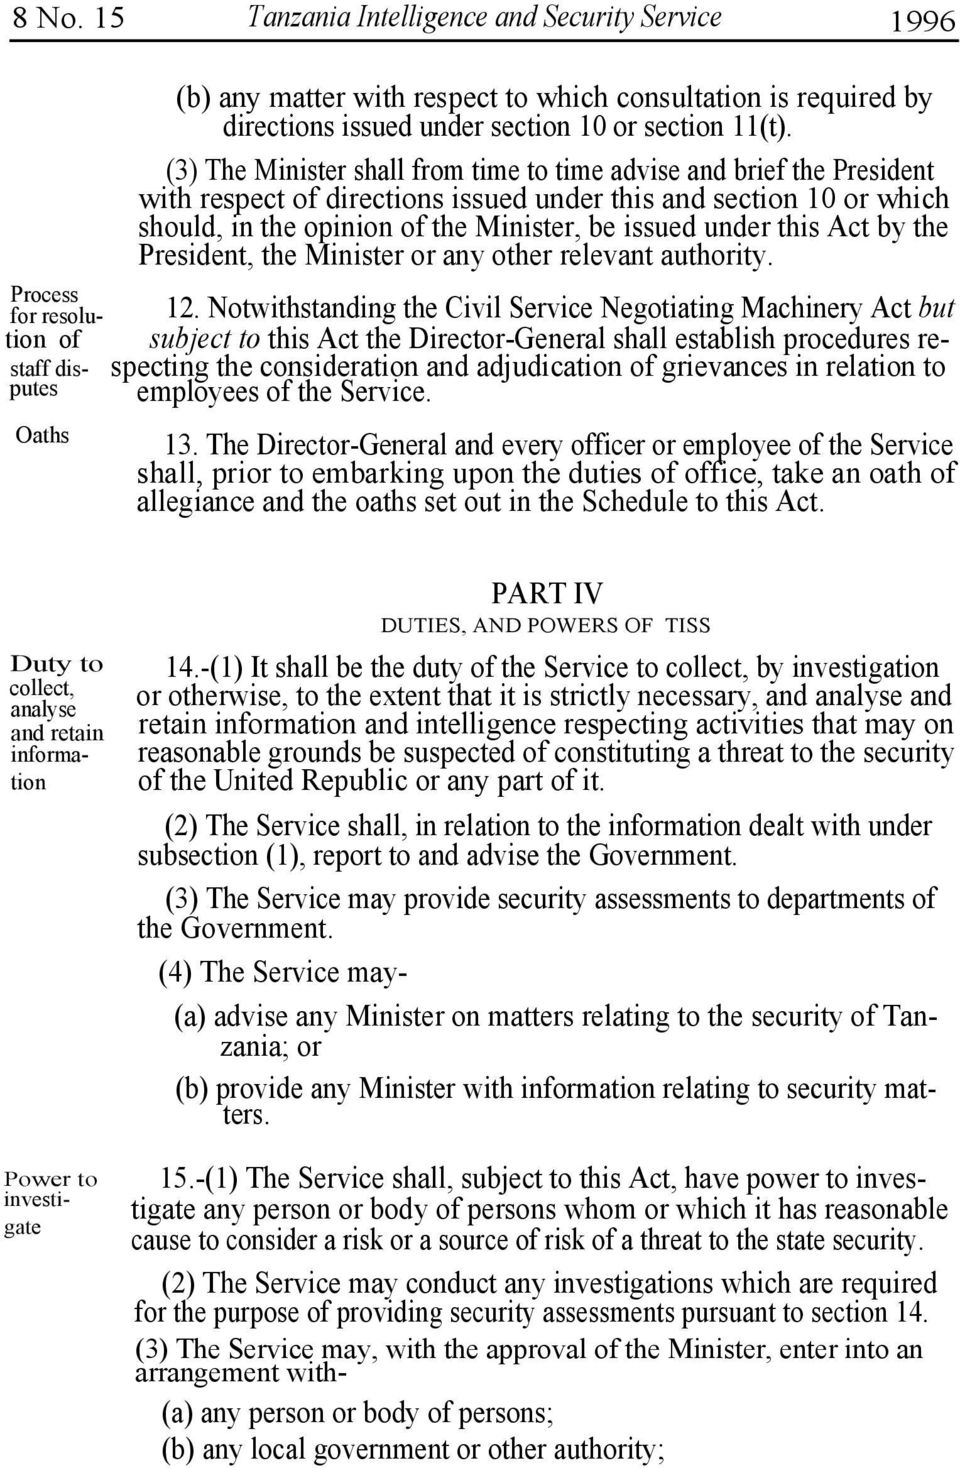 this Act by the President, the Minister or any other relevant authority. Process for resolu- tion of staff disputes 12.